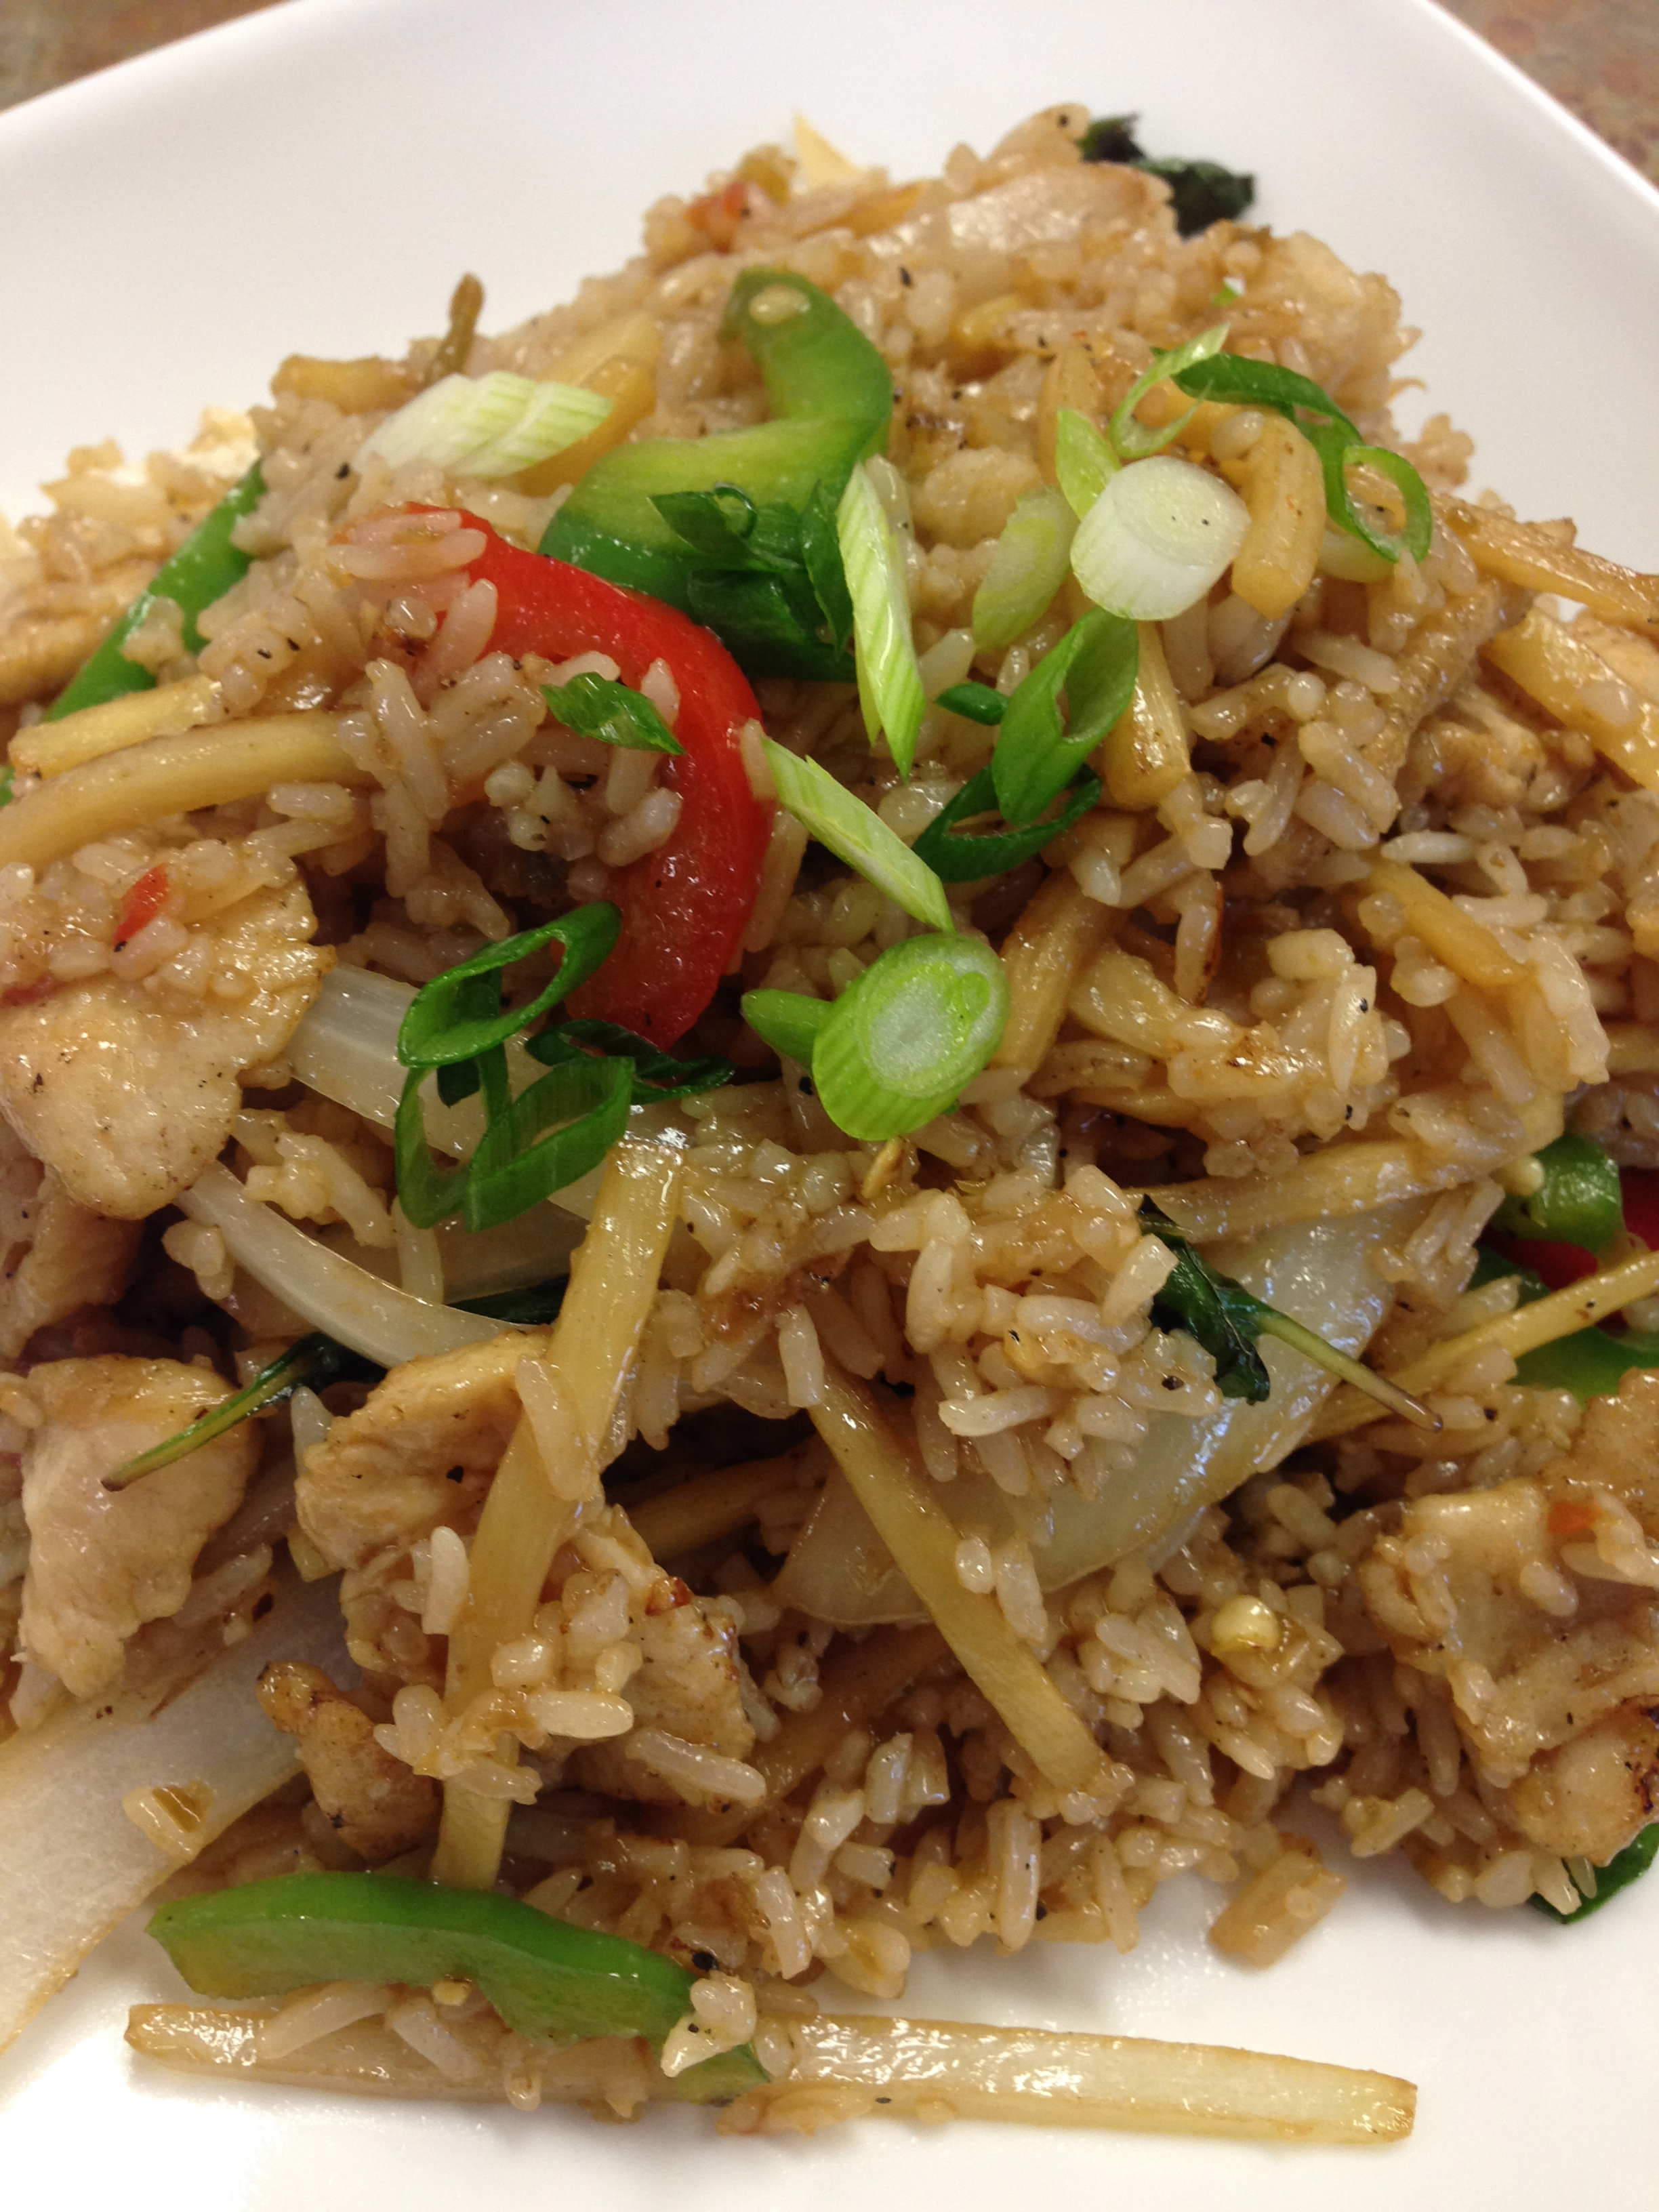 #32 SPICY FRIED RICE Image